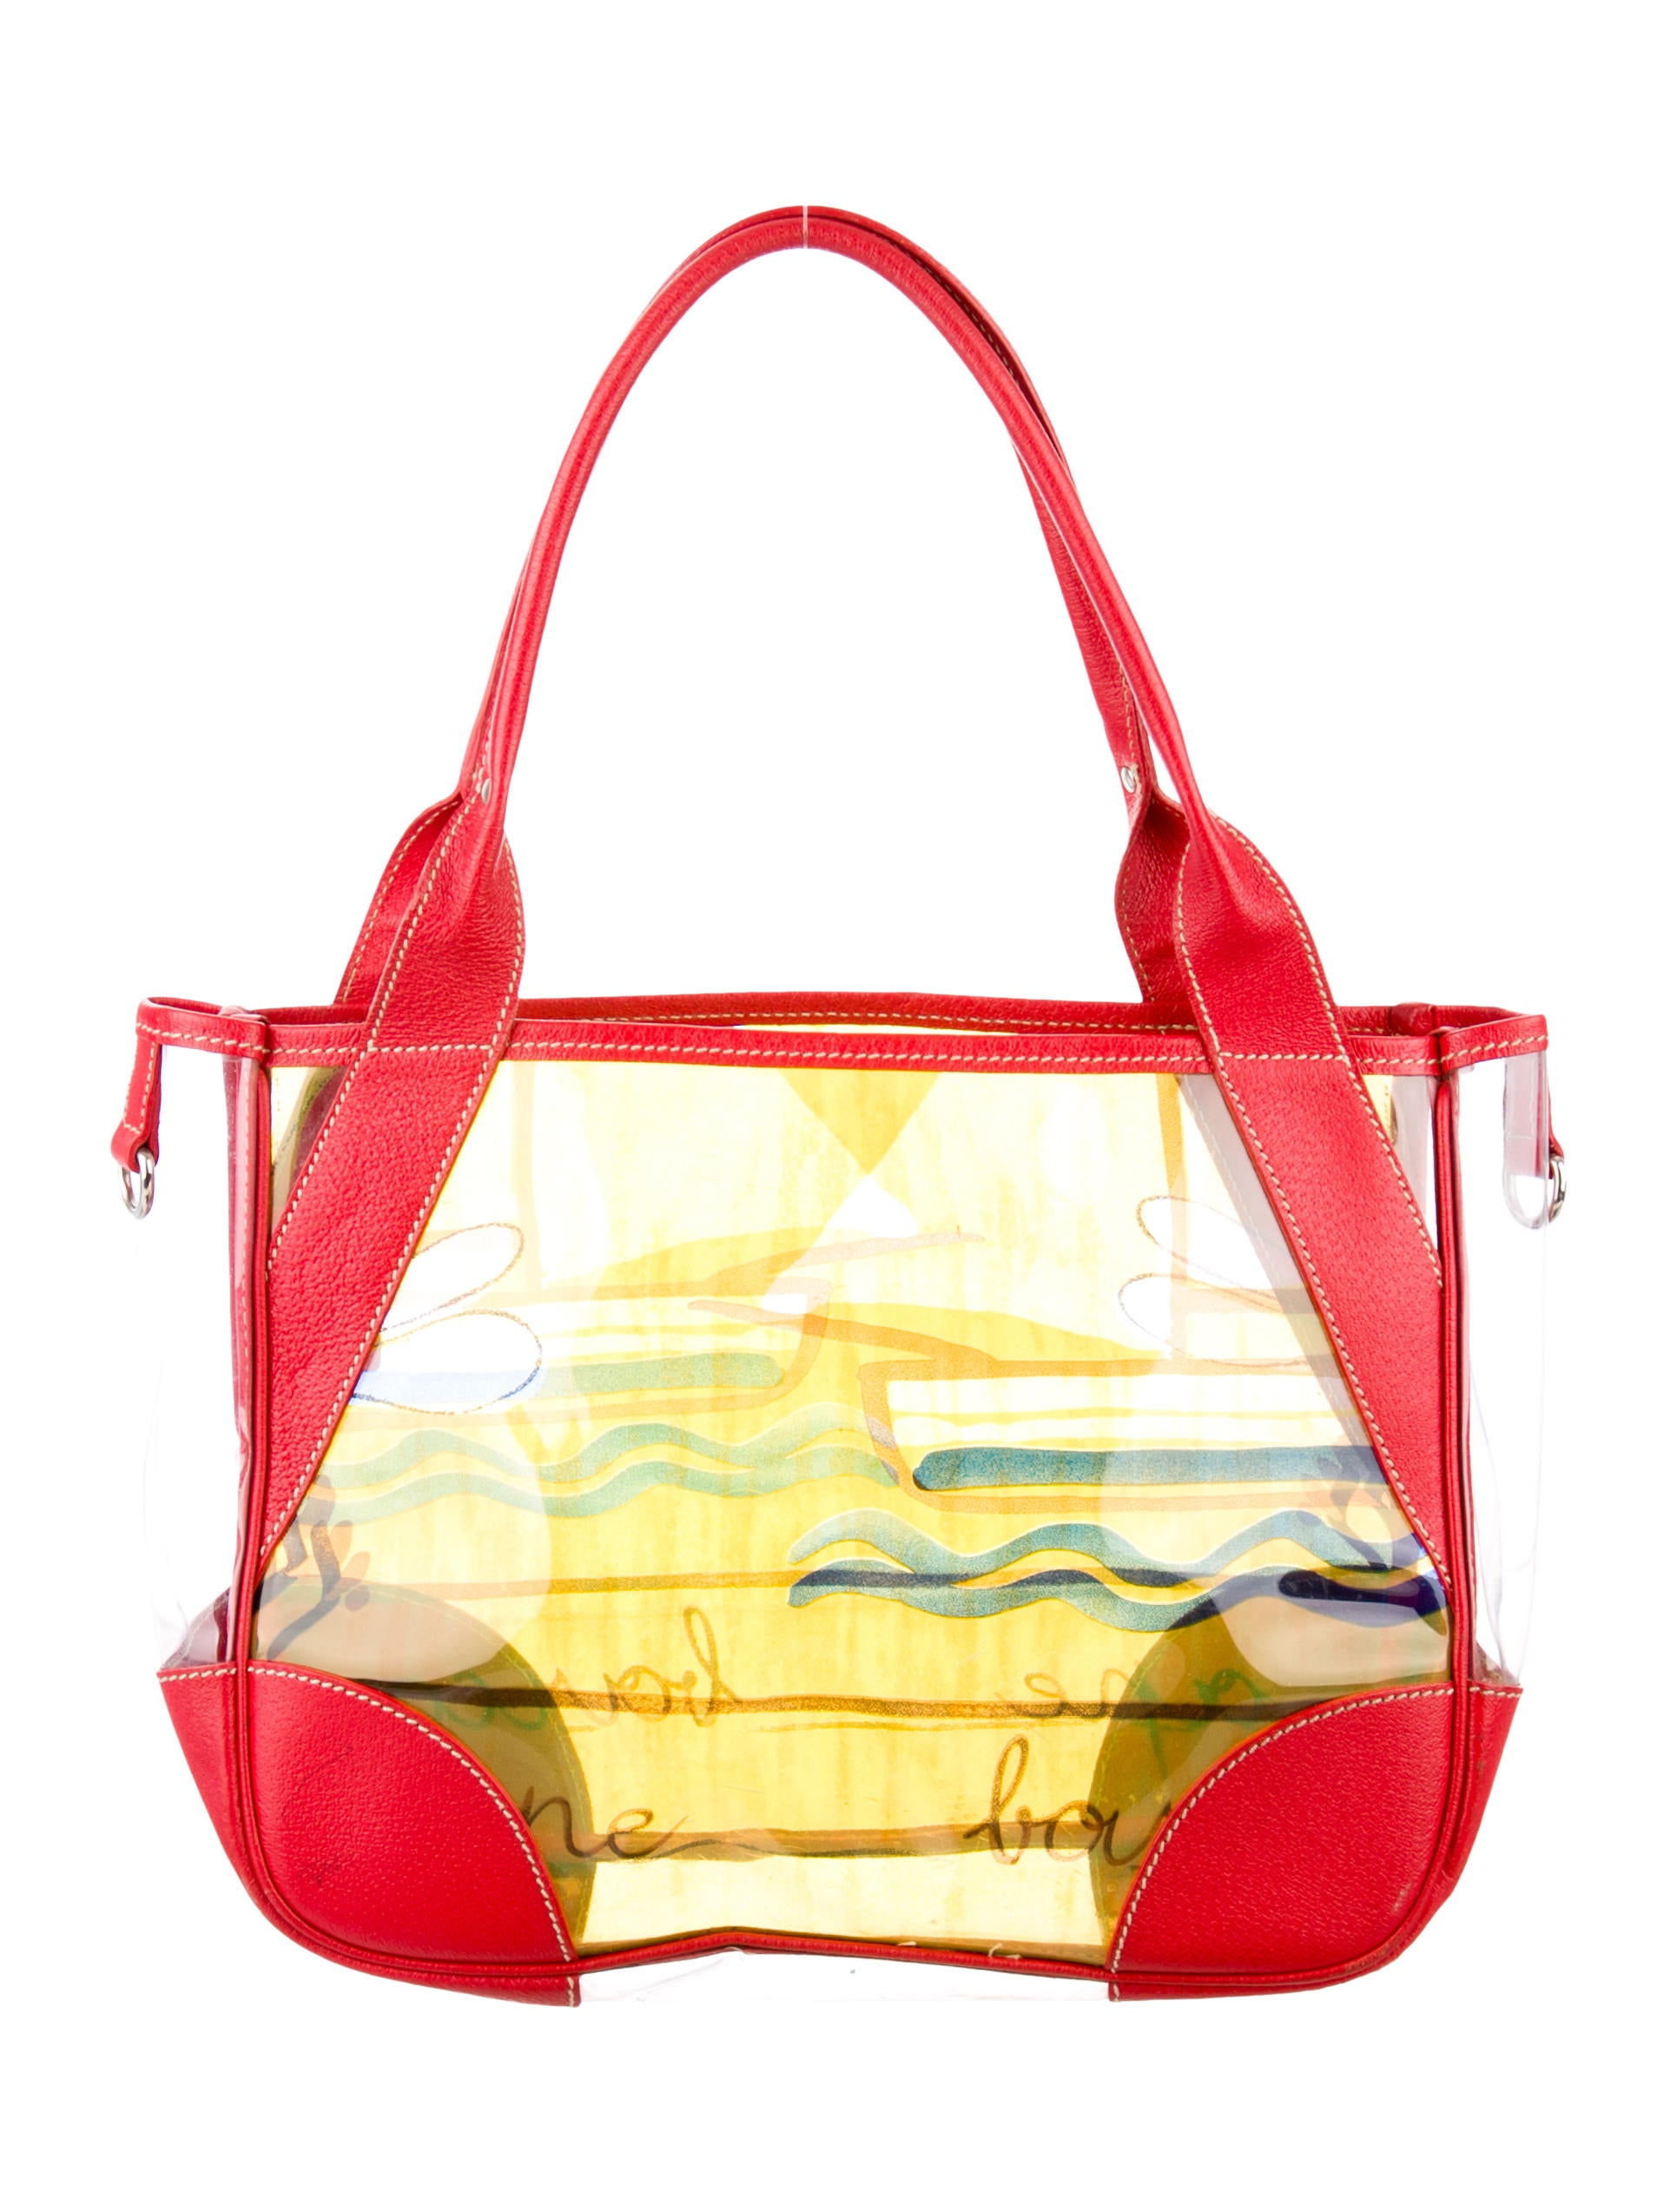 Prada Vinyl Beach Bag - Handbags - PRA82775 | The RealReal